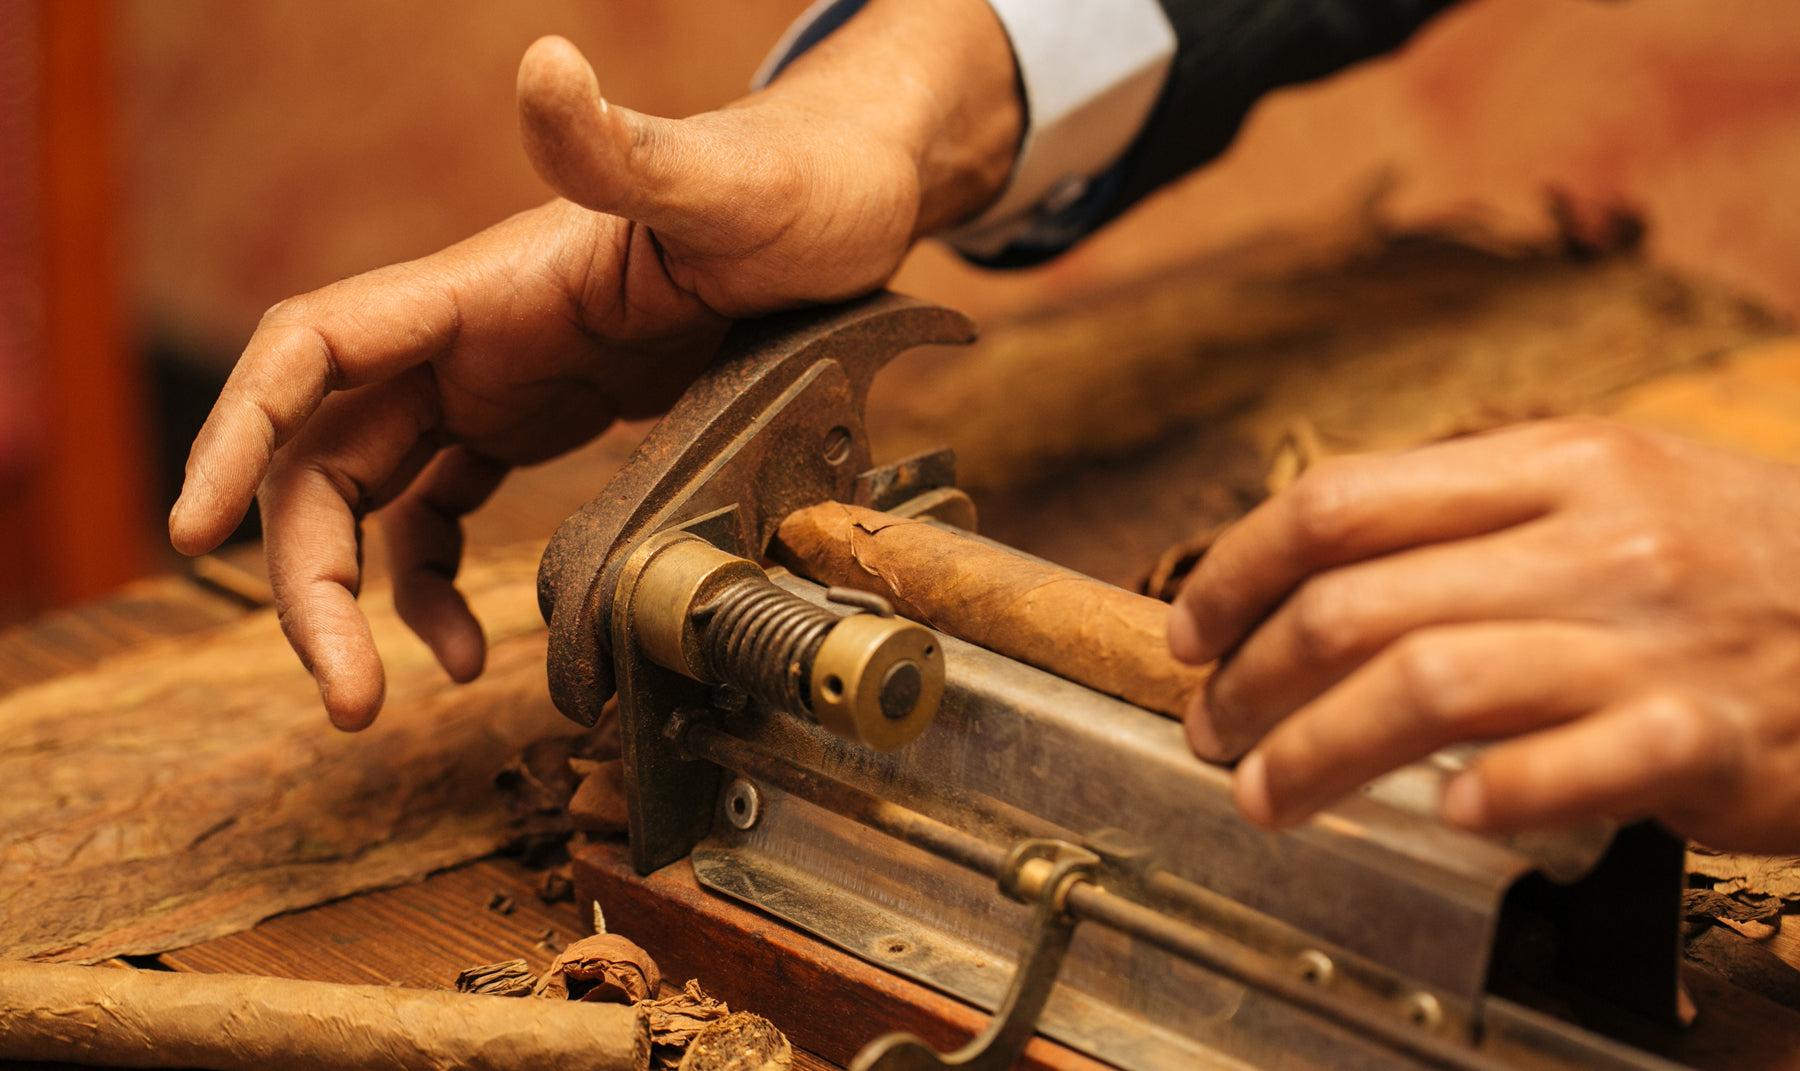 A Gentle Touch: Hand-Rolling Cigars